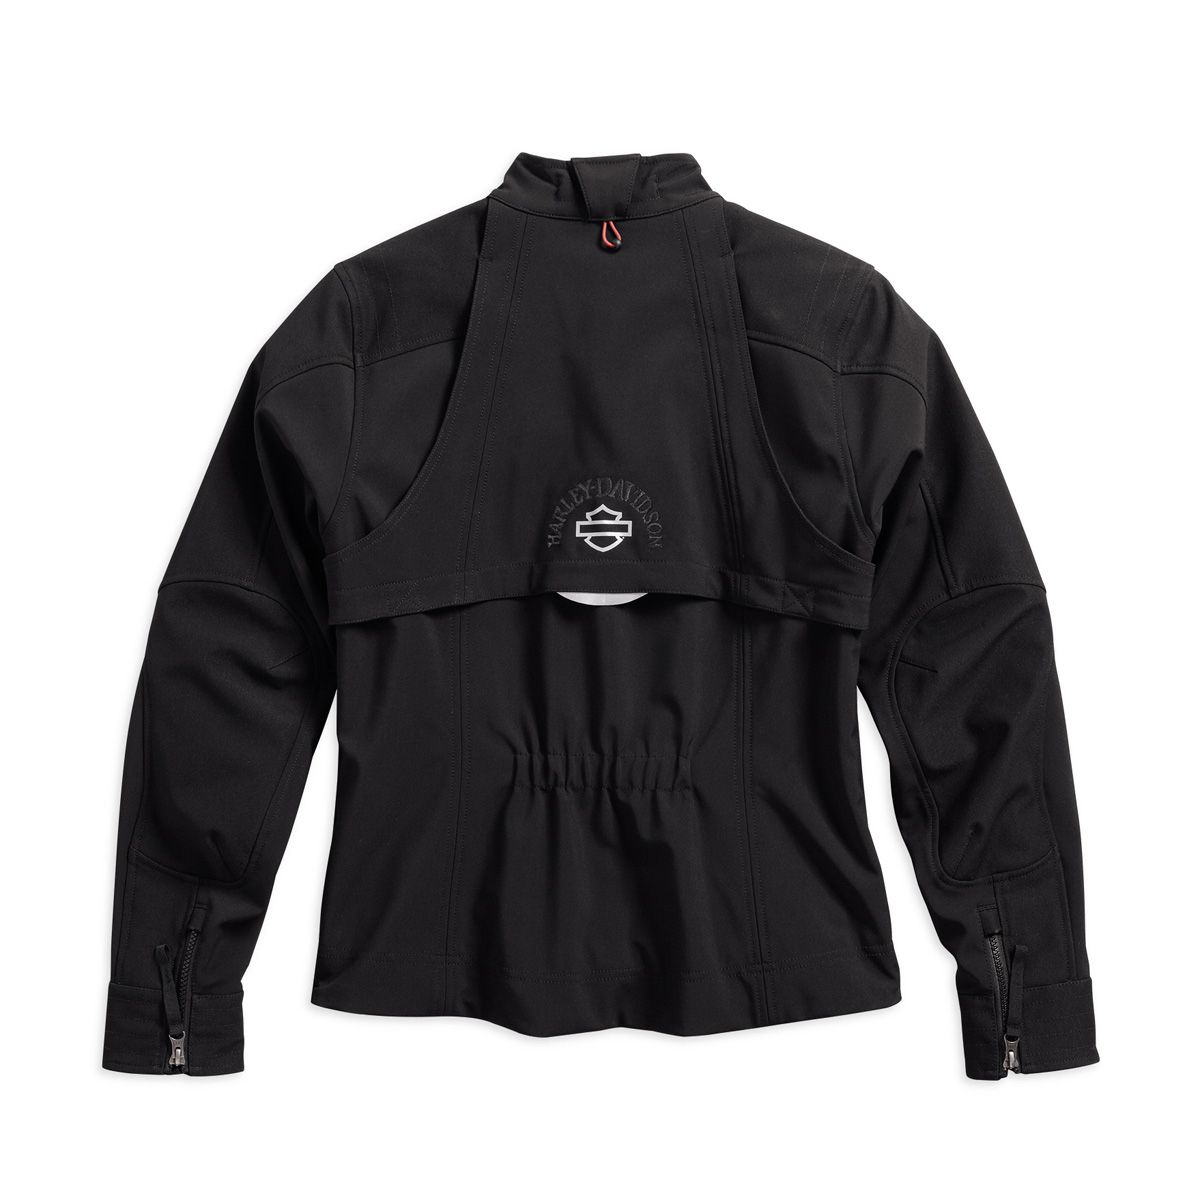 b354121f9 New Harley-Davidson MotorClothes and Accessories | Motorcyclist